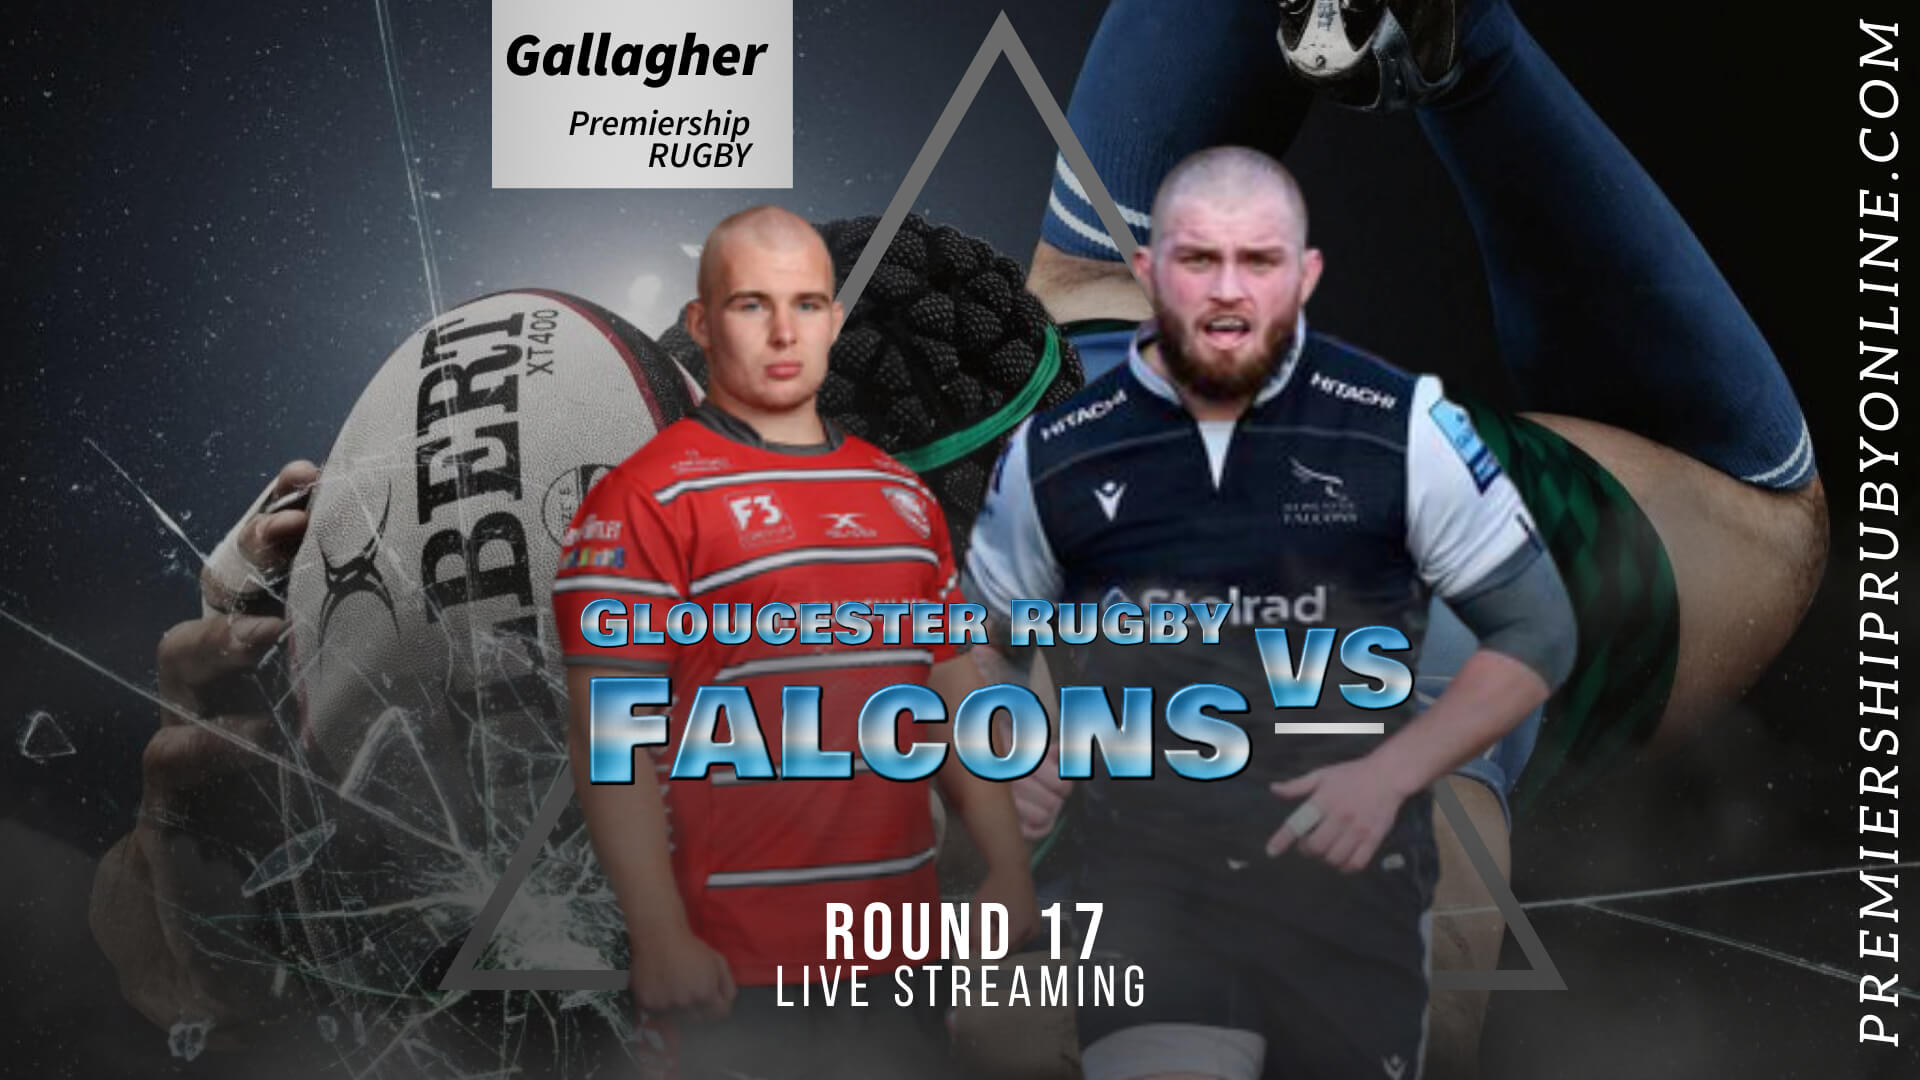 Gloucester Rugby Vs Newcastle Falcons Live Stream 2020-21 | Premiership Rugby RD 17